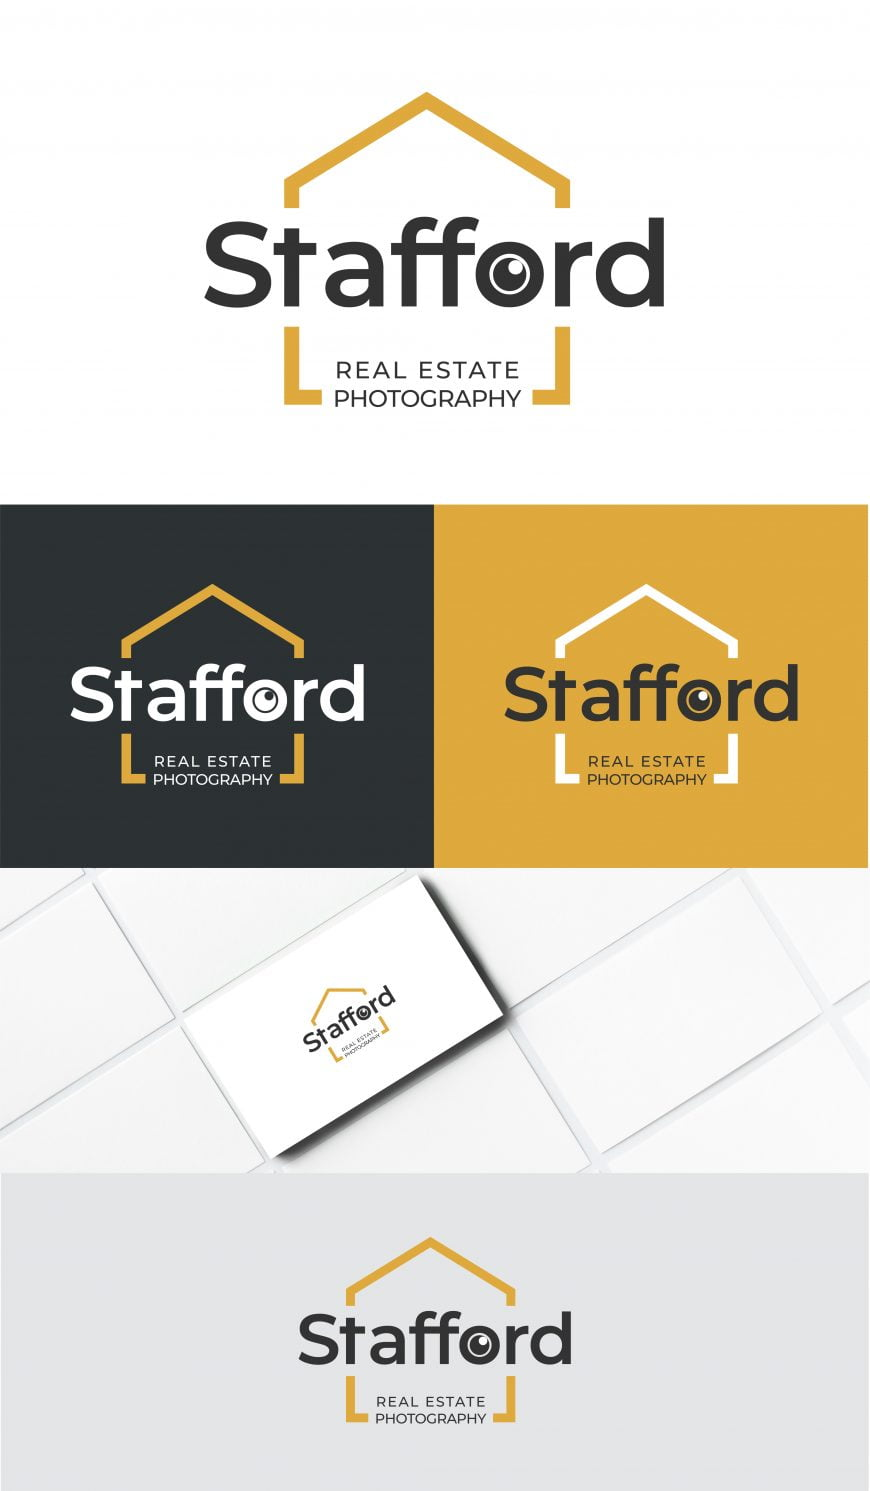 REAL-ESTATE-PHOTOGRAPHY-LOGO-TEMPLATE-scaled